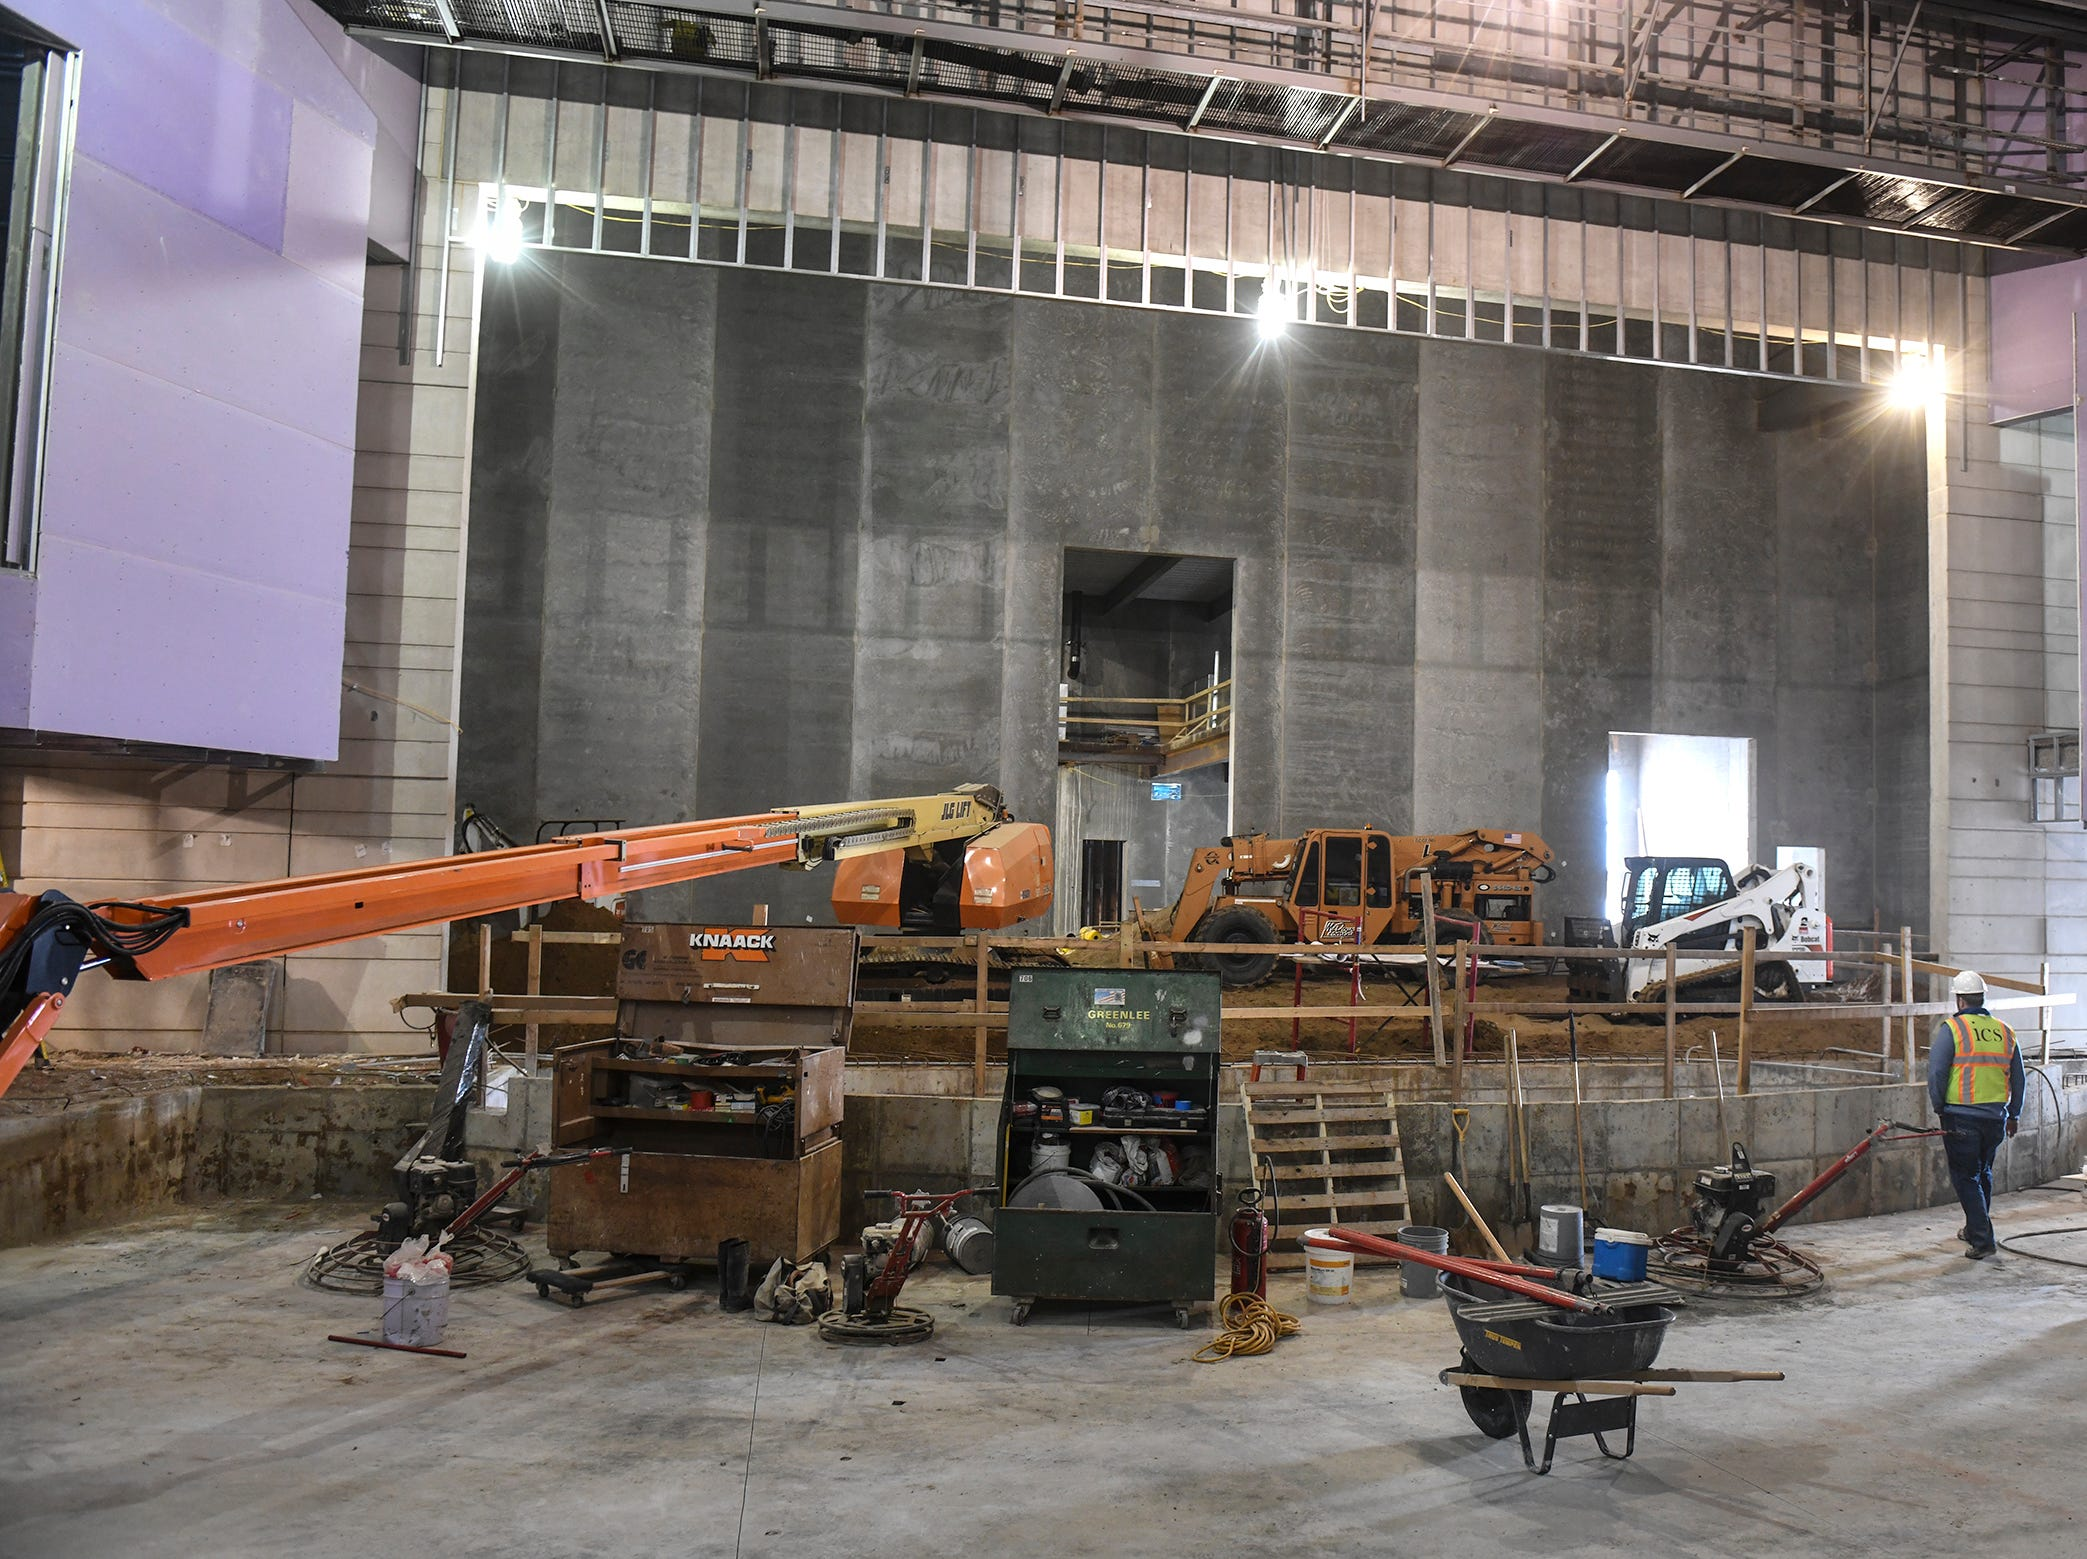 The stage and orchestra pit in the new auditorium are pictured during a tour of the new Tech High School building under construction Friday, March 15, in St. Cloud.